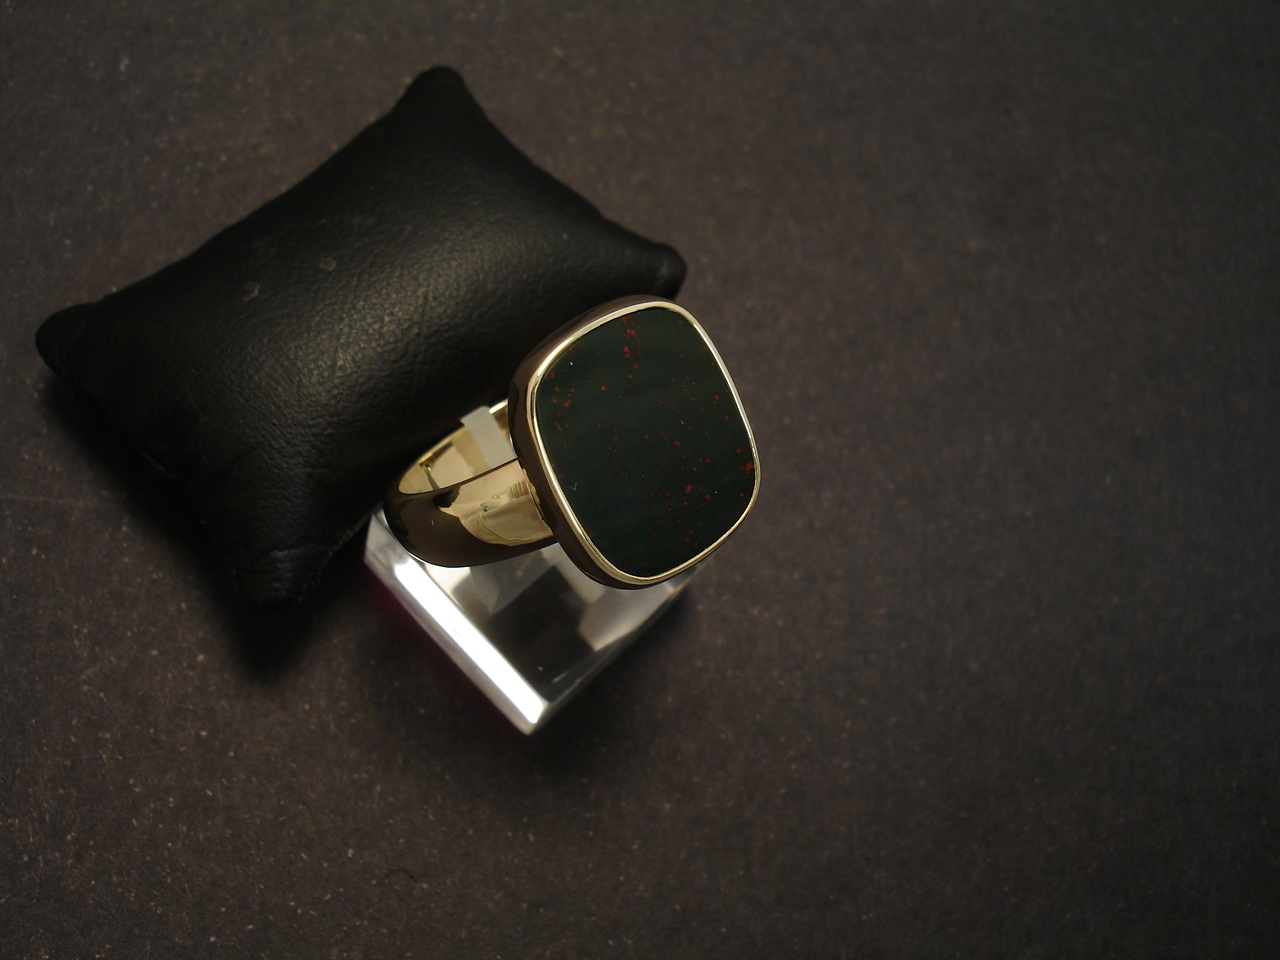 Bloodstone Ring, Handmade 9ct Gold - Christopher William Sydney Australia -  Antique, ruby, coral and tribal jewellery